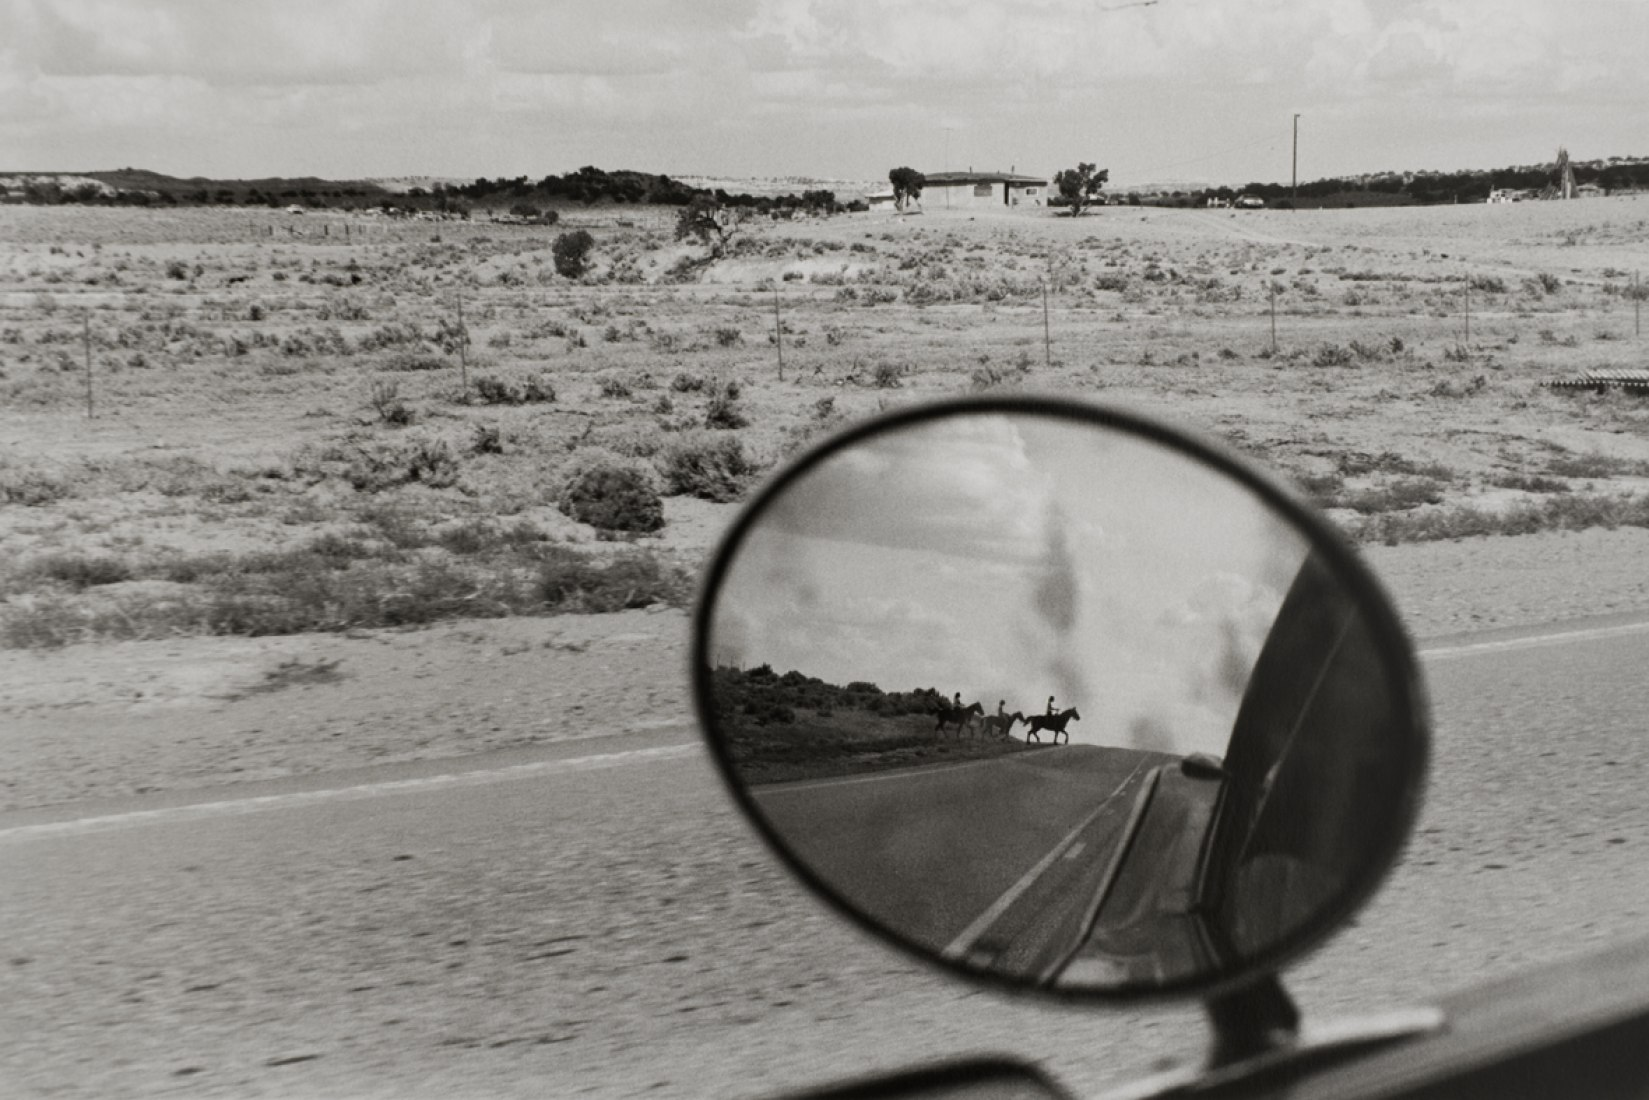 Route 666, 1978. Photographs by Bernard Plossu at La Fábrica. Photograph @ Bernard Plossu. Courtesy of La Fábrica.